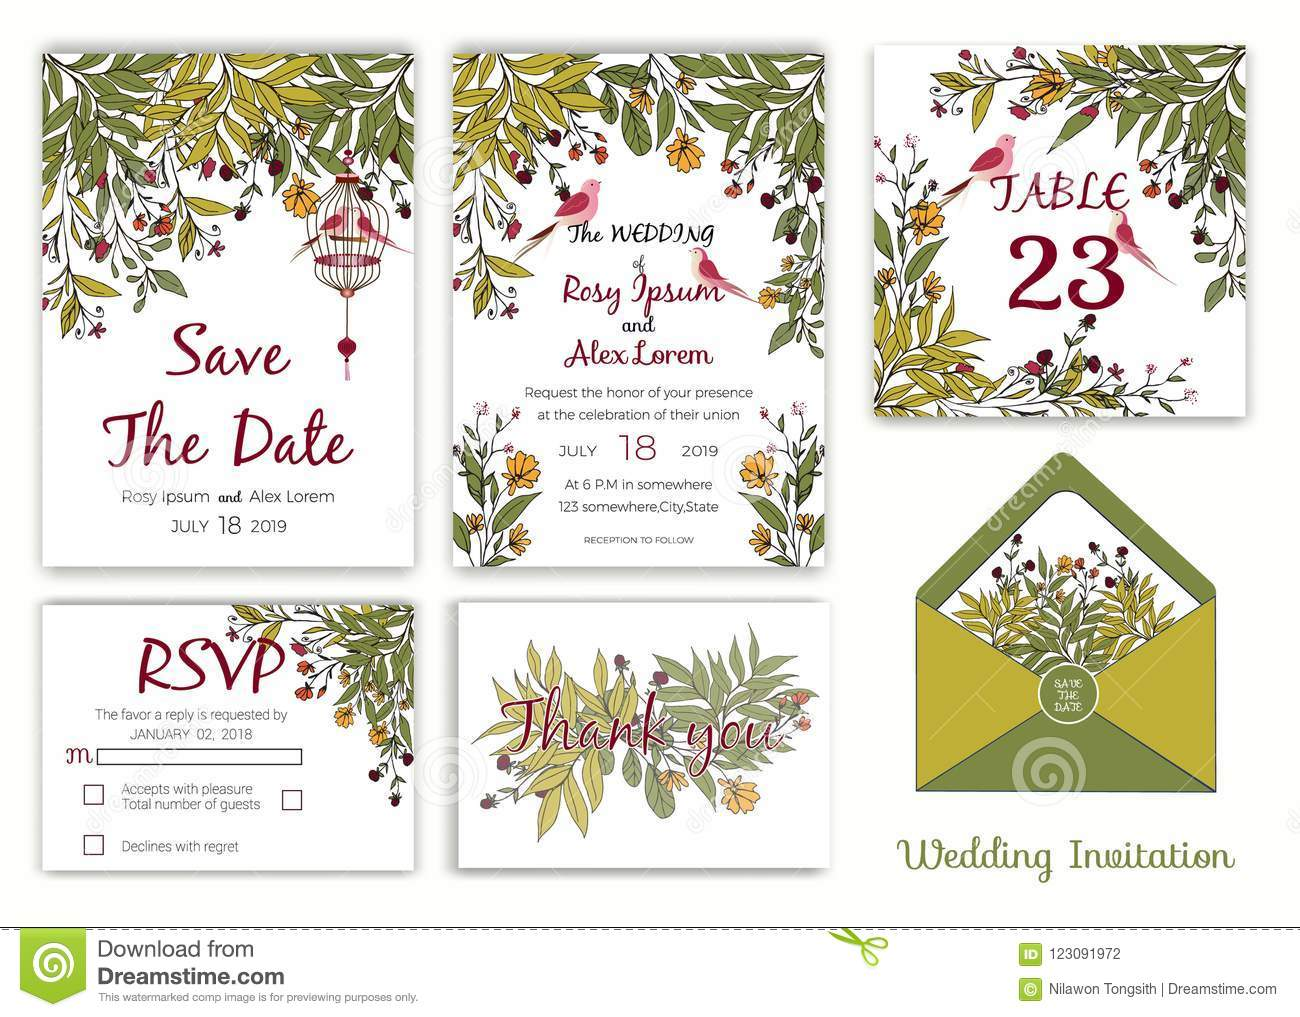 Wedding invitation , Save the date, RSVP card, Thank you card, T